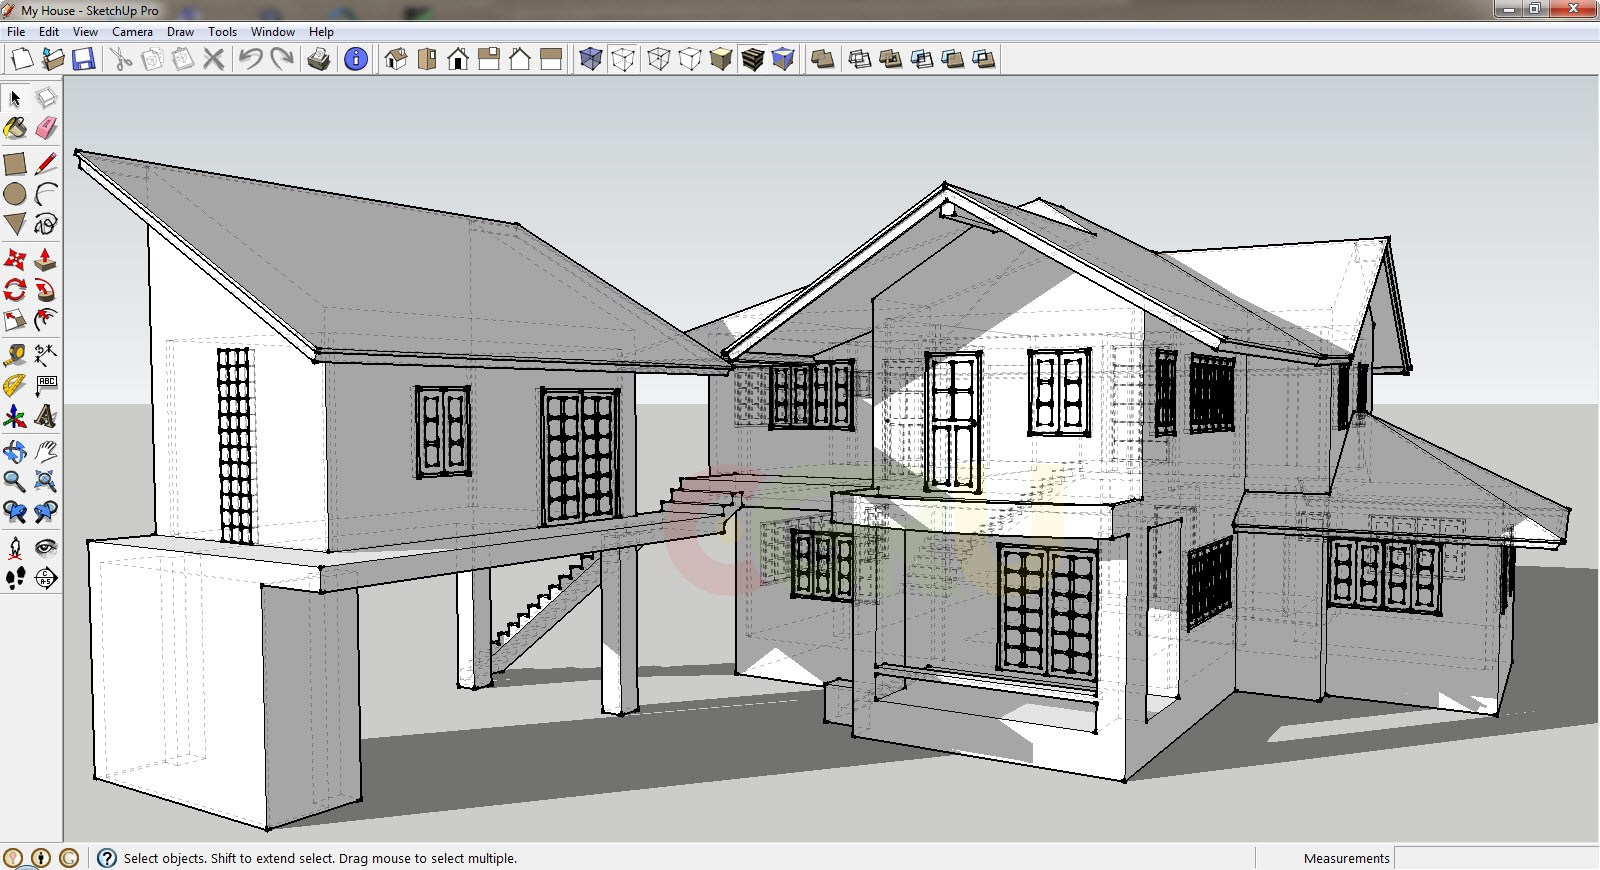 sketchup pro full version free download